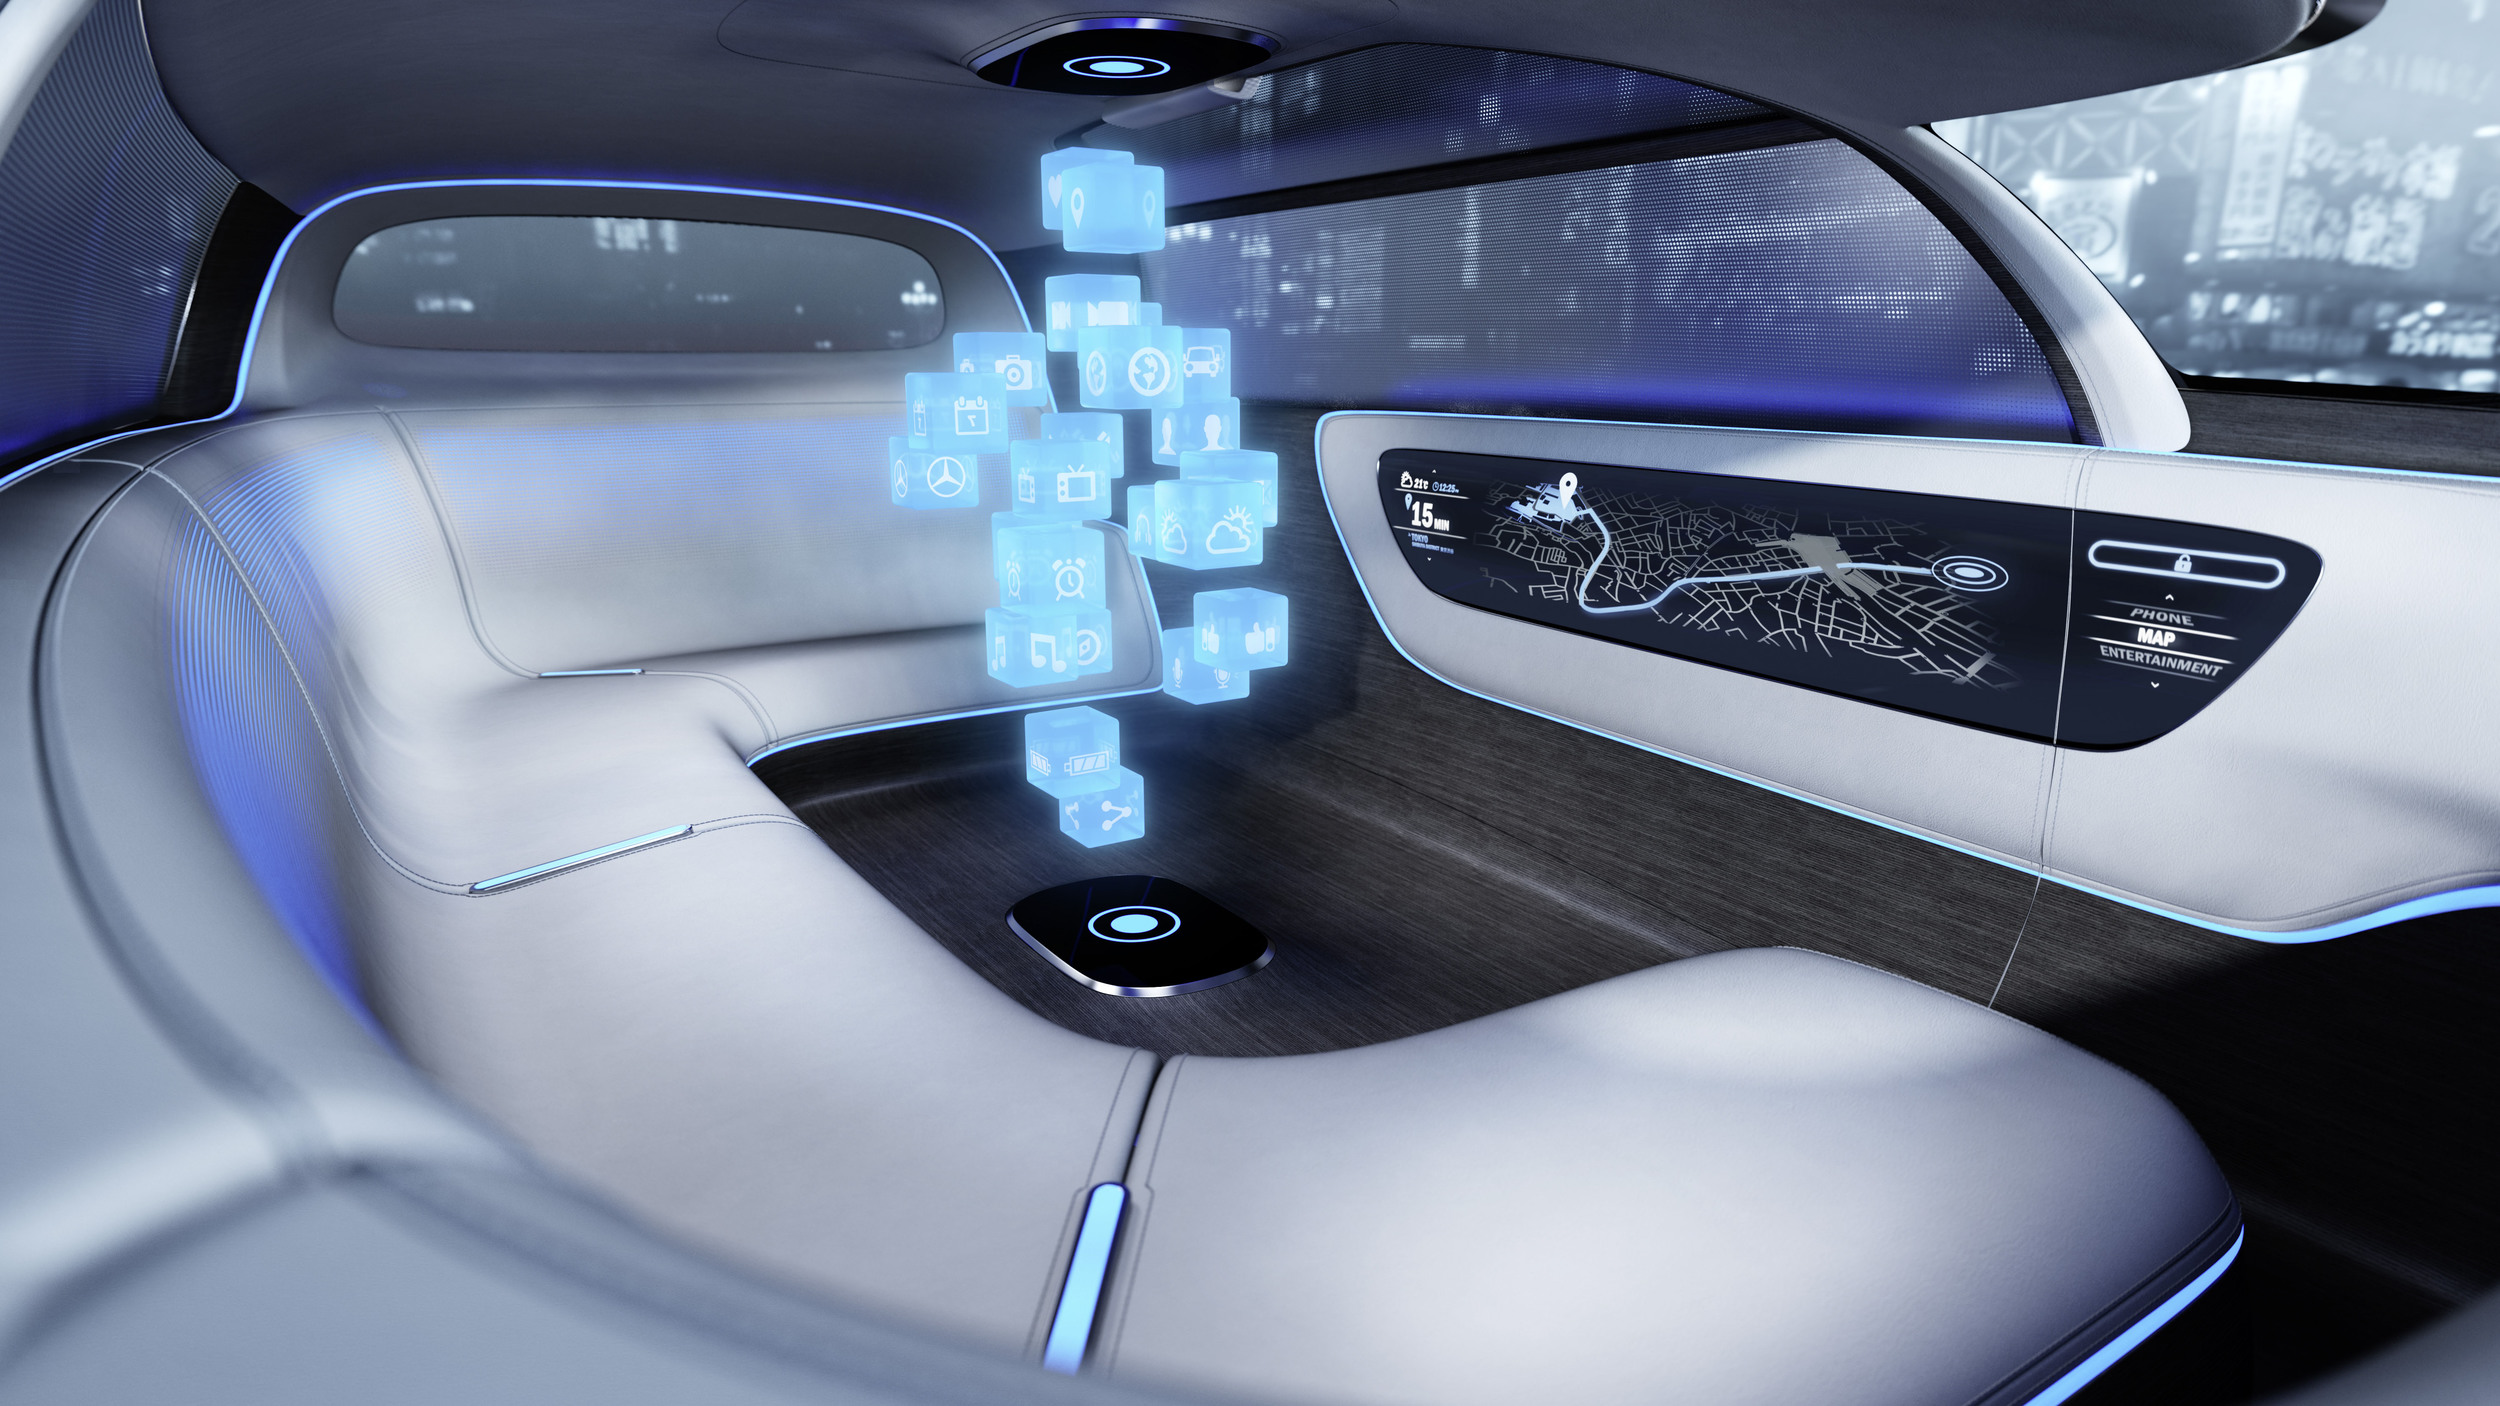 http://www.blogcdn.com/slideshows/images/slides/367/751/8/S3677518/slug/l/mercedes-benz-vision-tokyo-concept-016-1.jpg